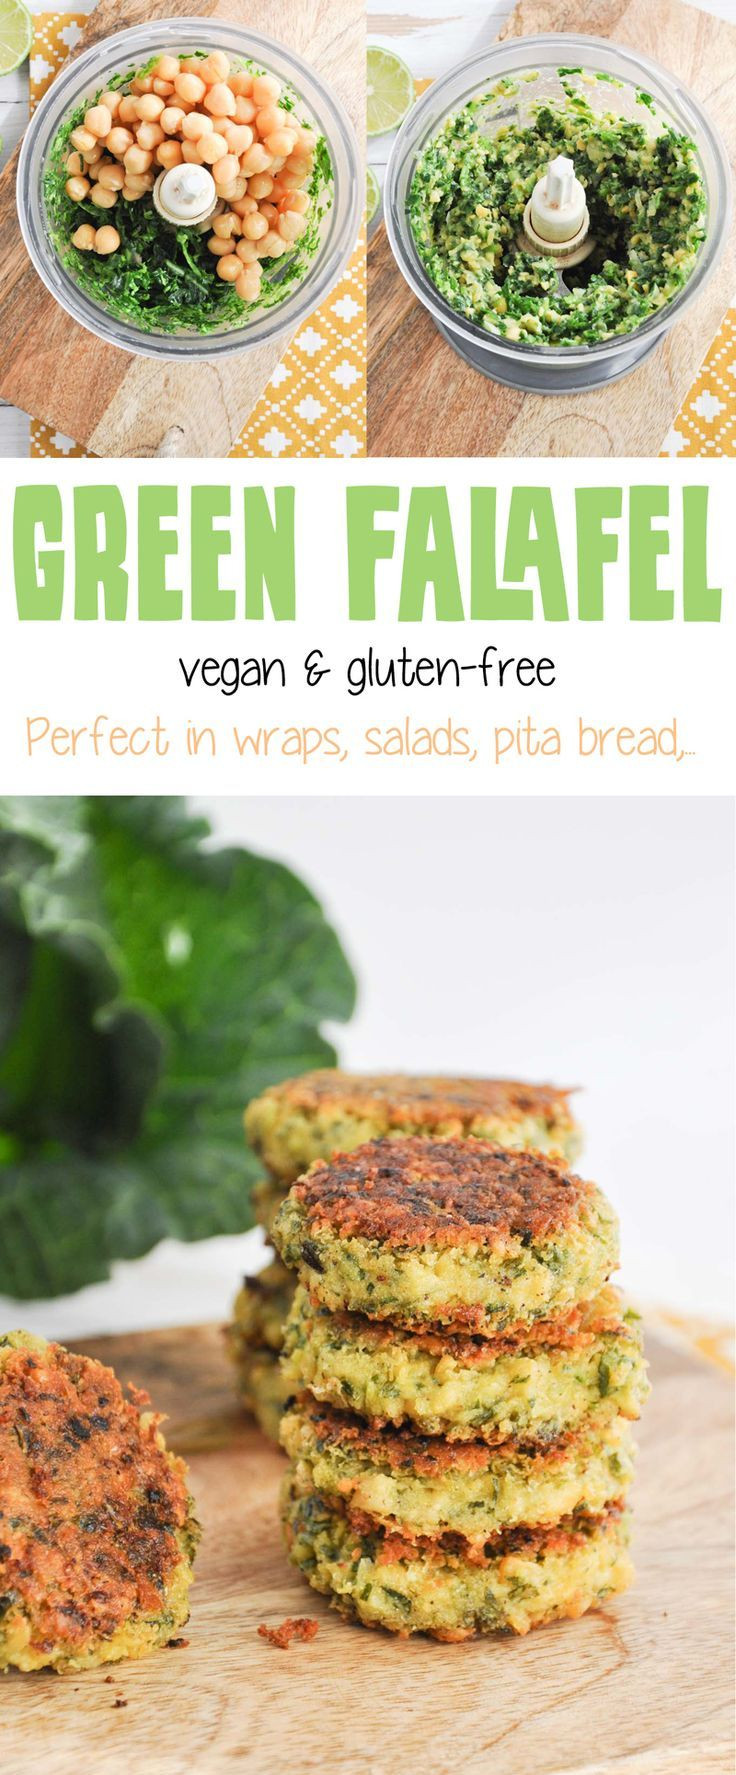 Green Falafel #vegan #glutenfree #falafel #chickpeas #recipe| ElephantasticVegan.com